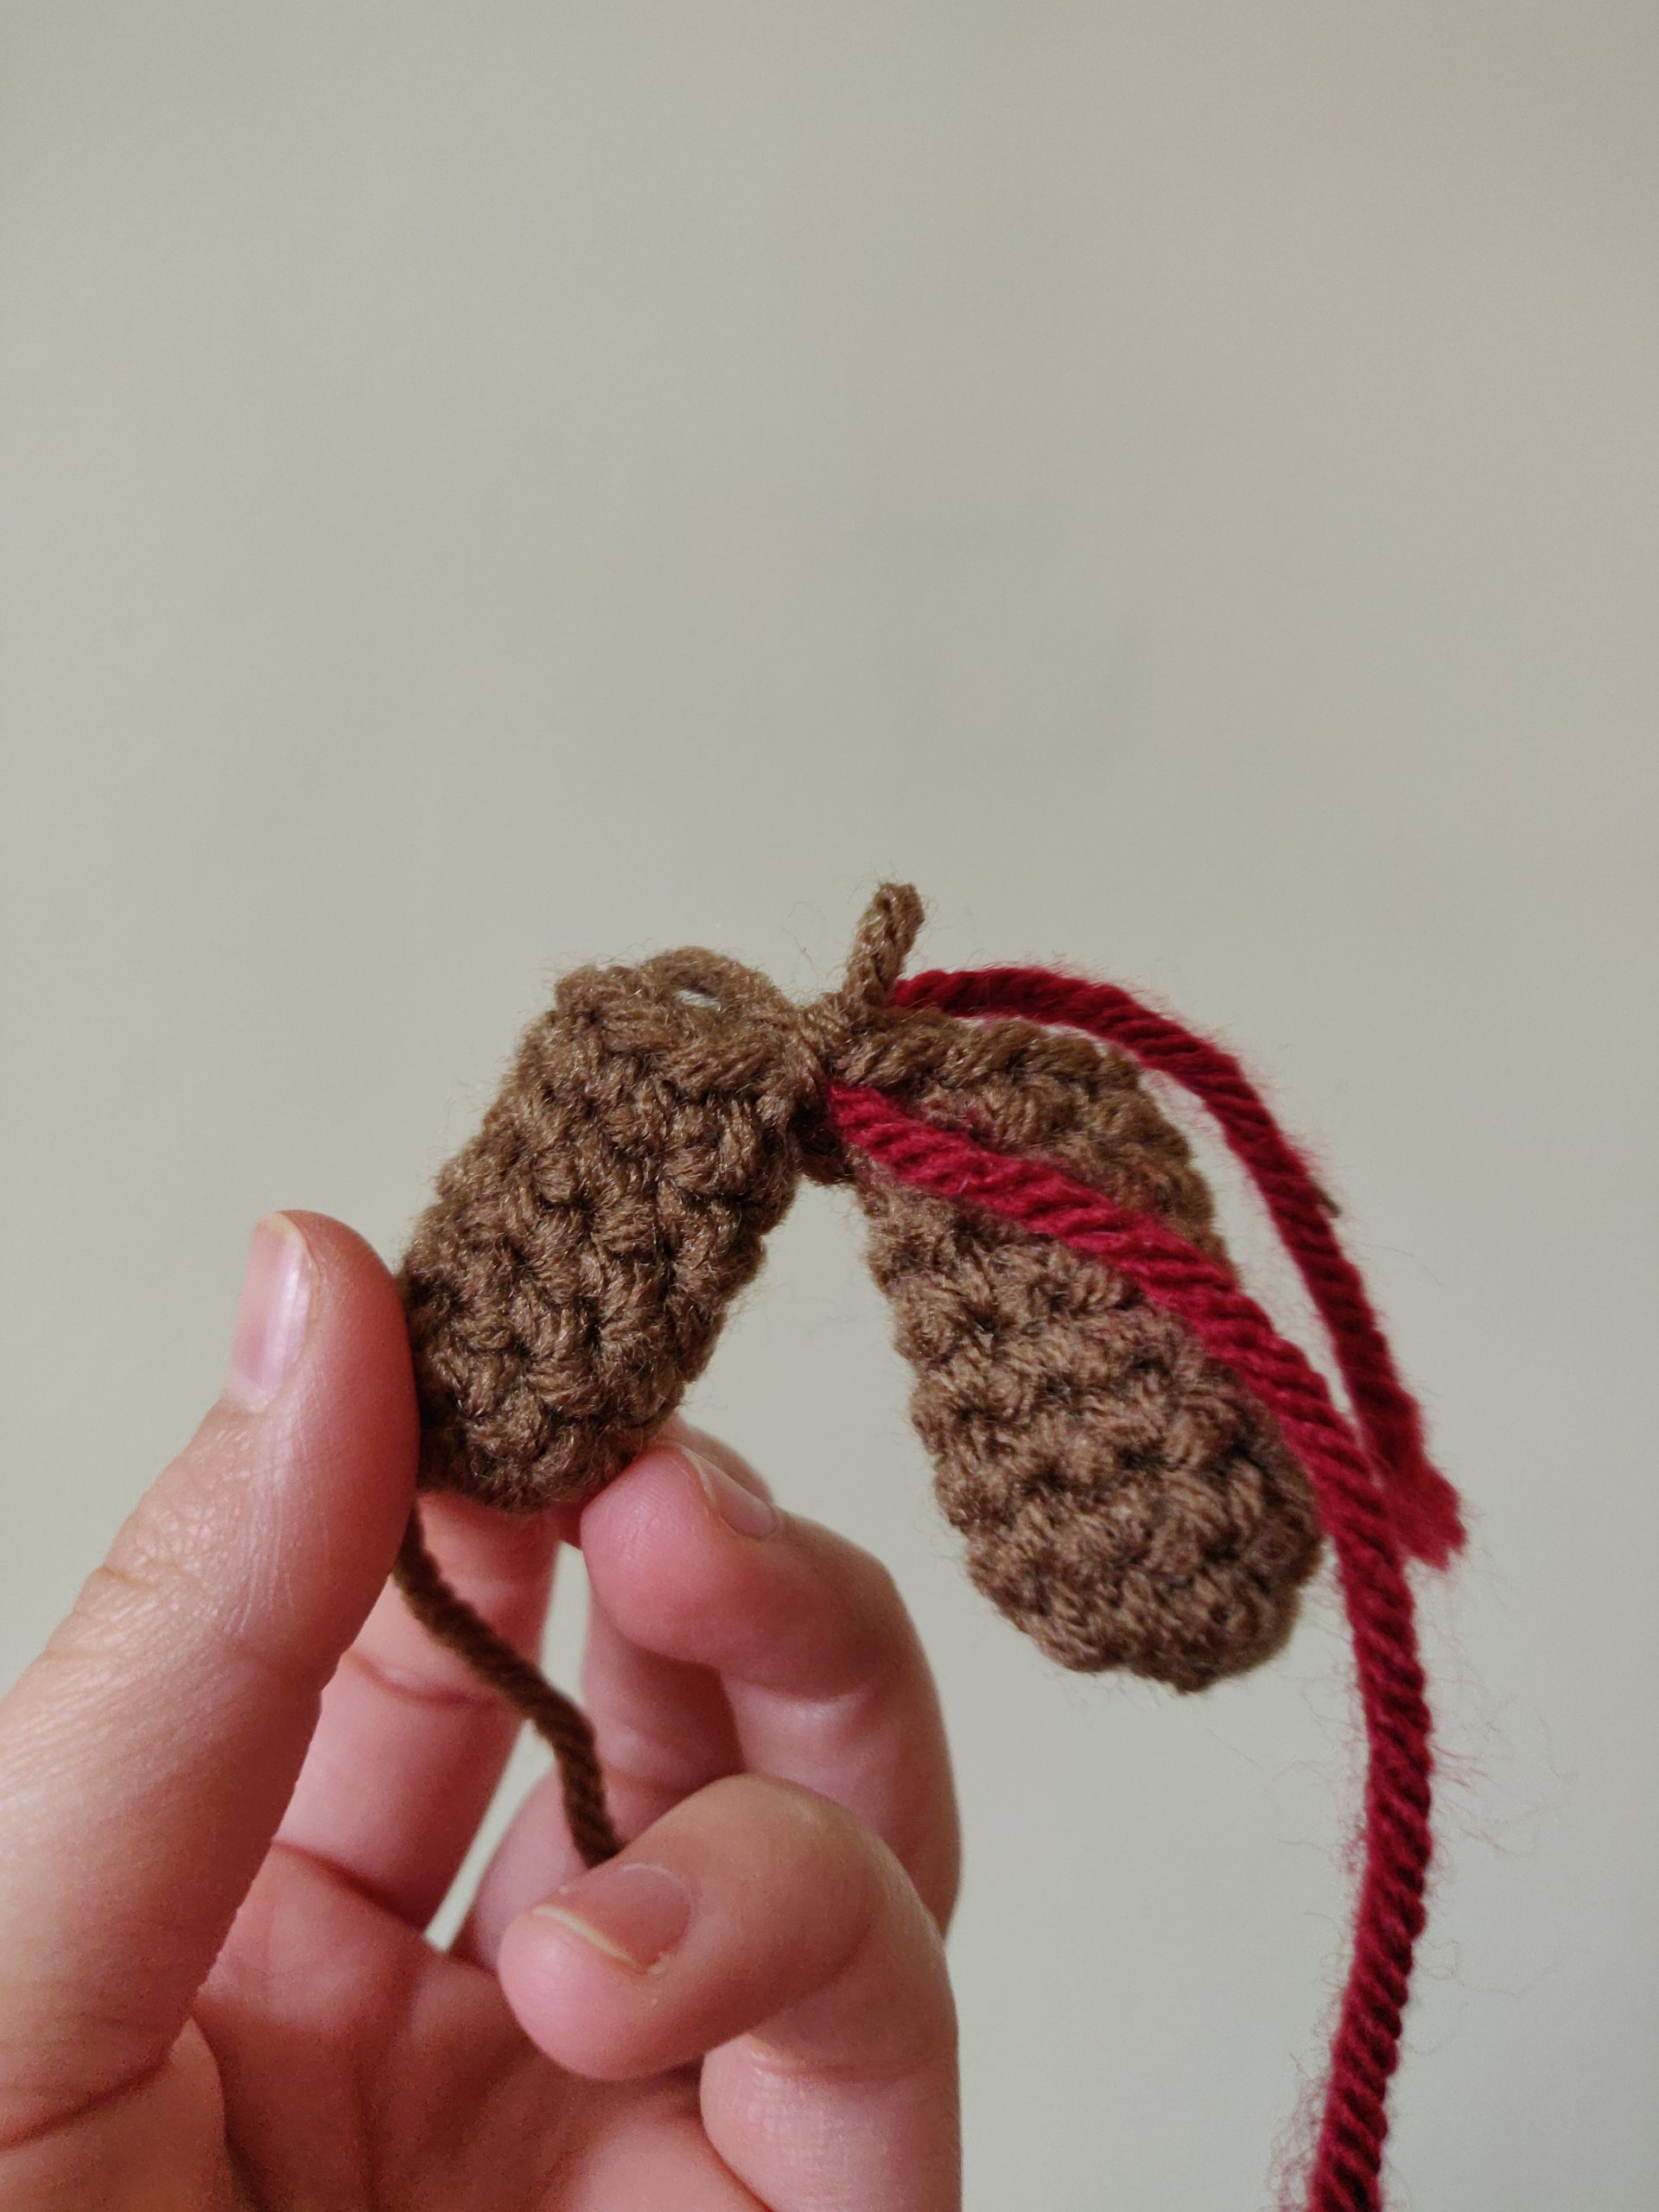 Process of brown crochet reindeer antlers.